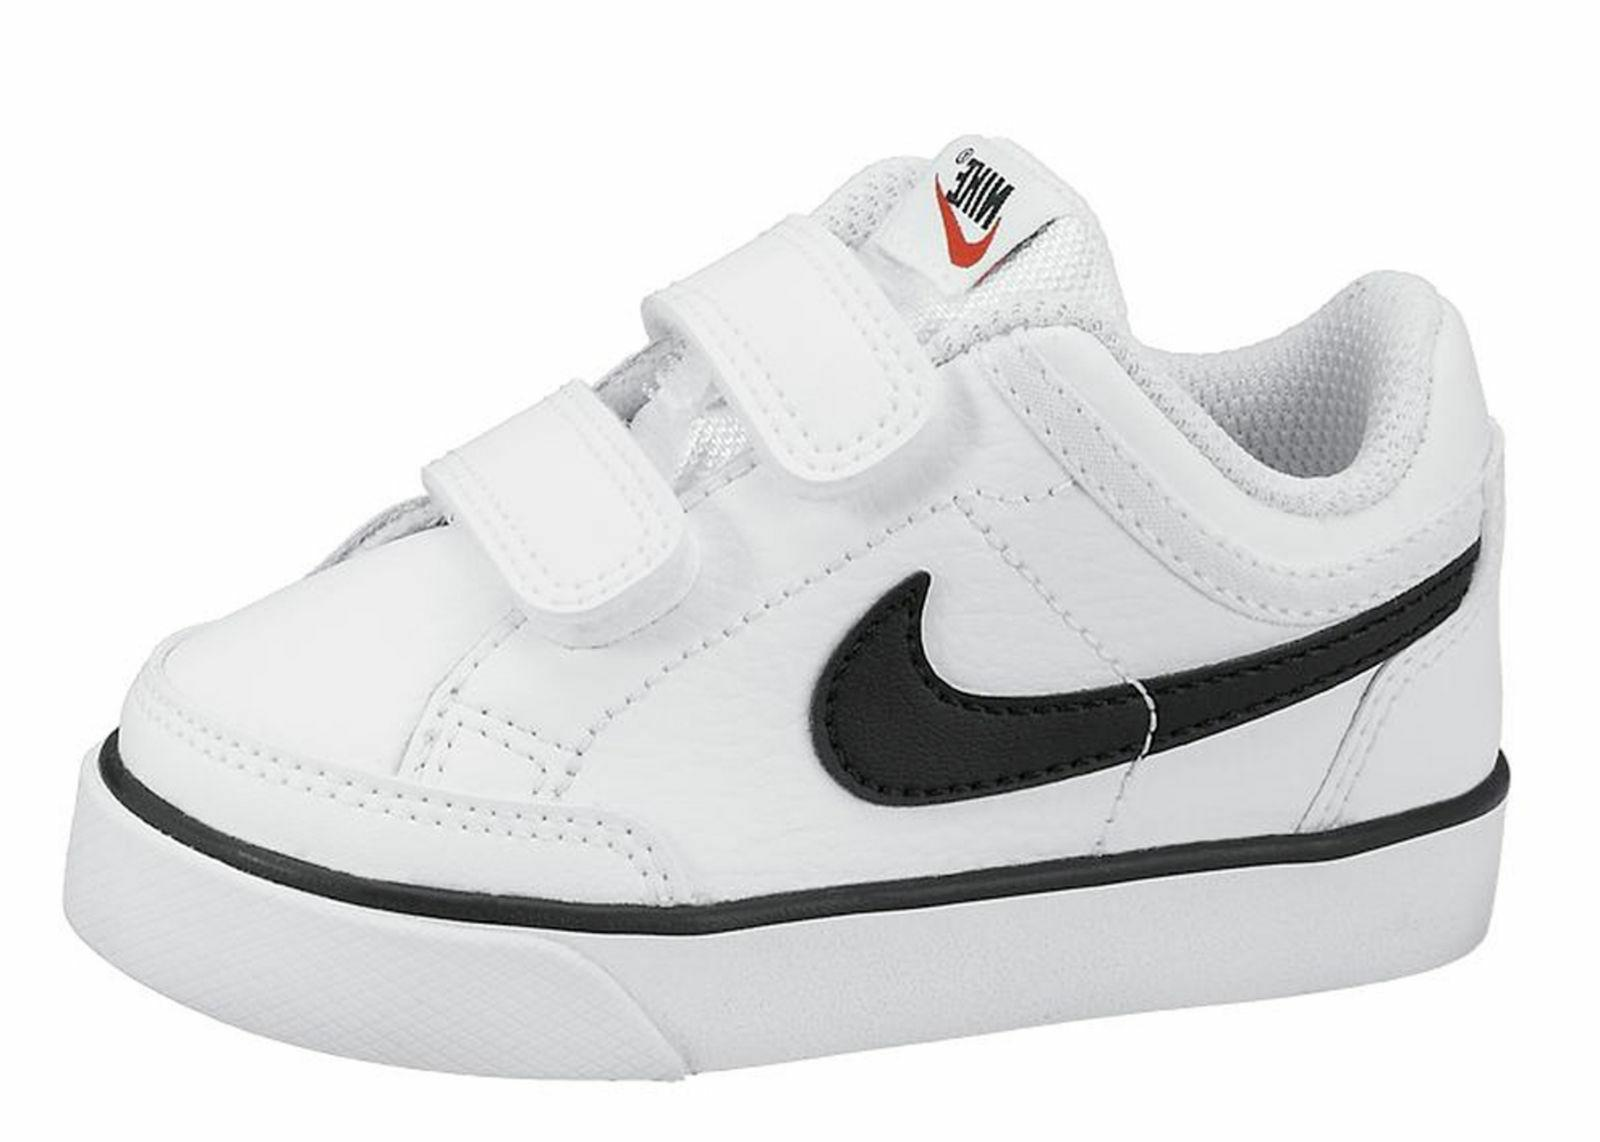 Nike Capri 3 Leather Boys Girls Toddler Baby Shoes White Bla